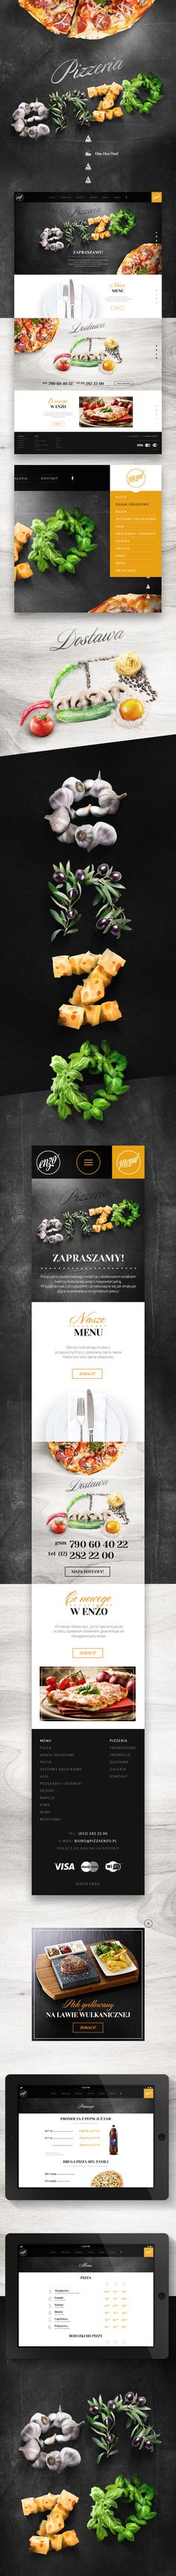 Pizzeria ENZO - #art #direction